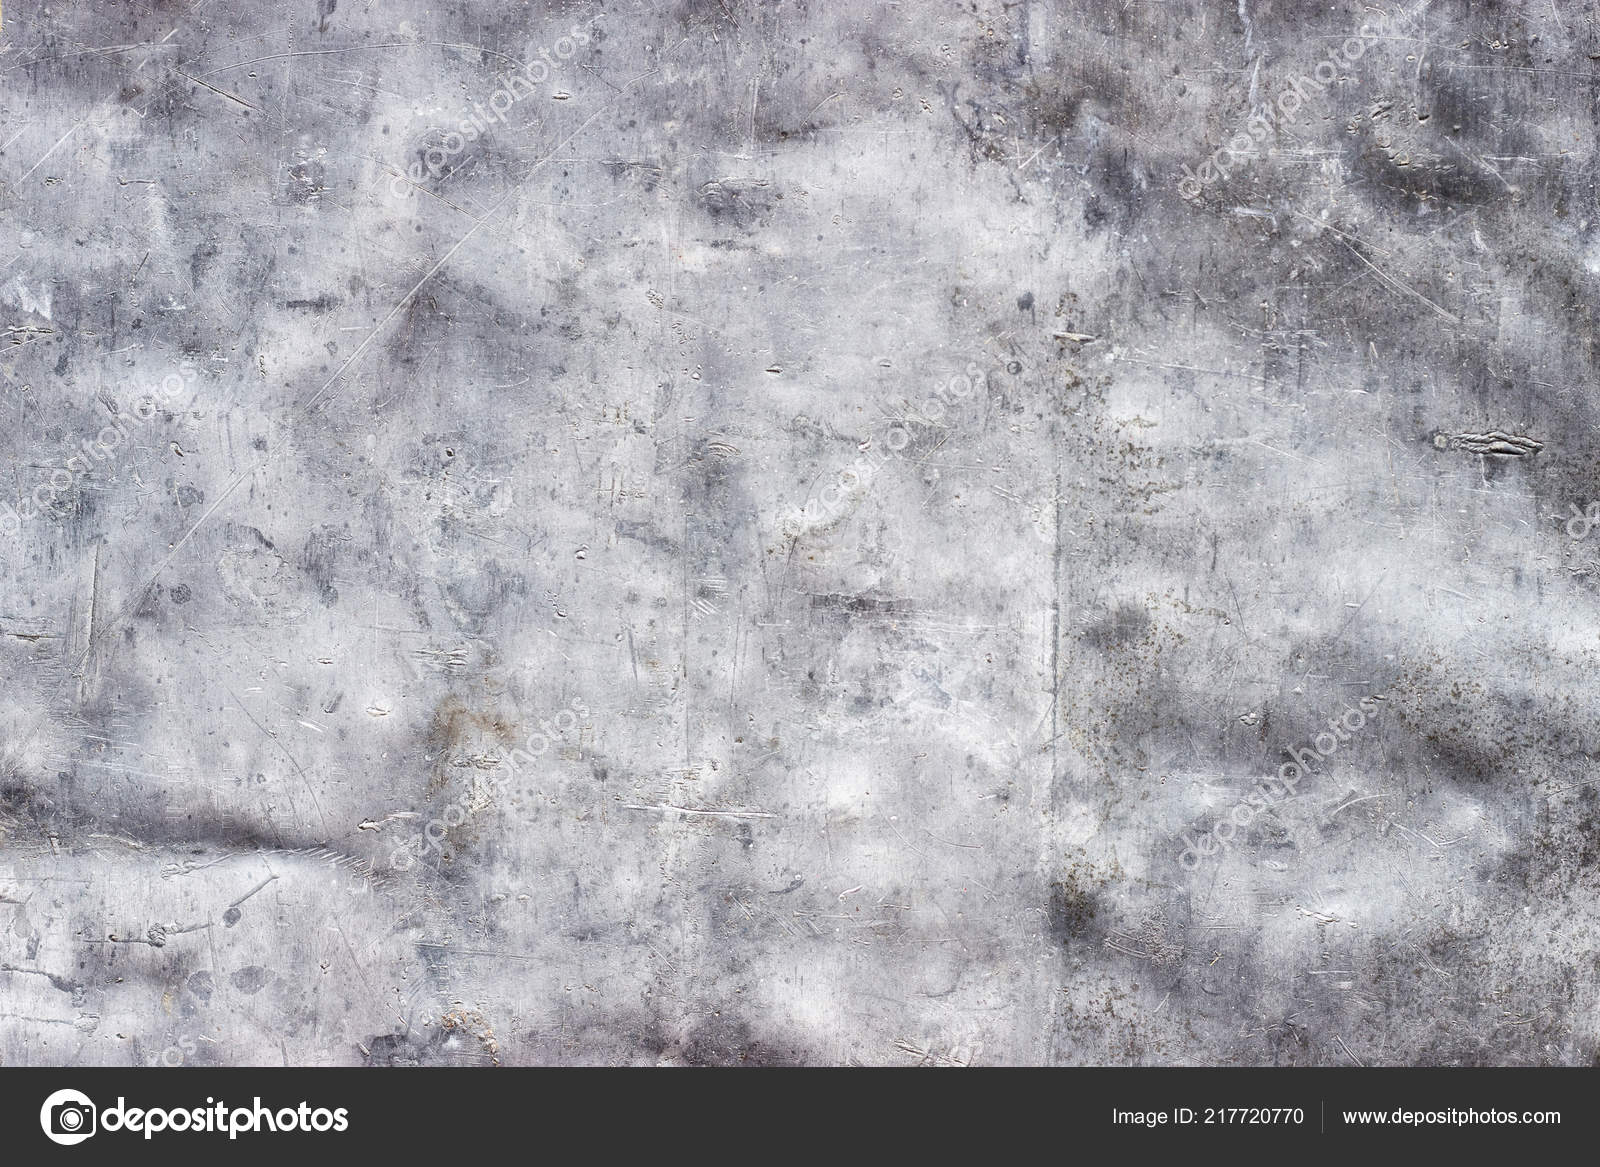 Crumpled Metal Texture Scratches Scuffs Stainless Steel Wallpaper– stock image